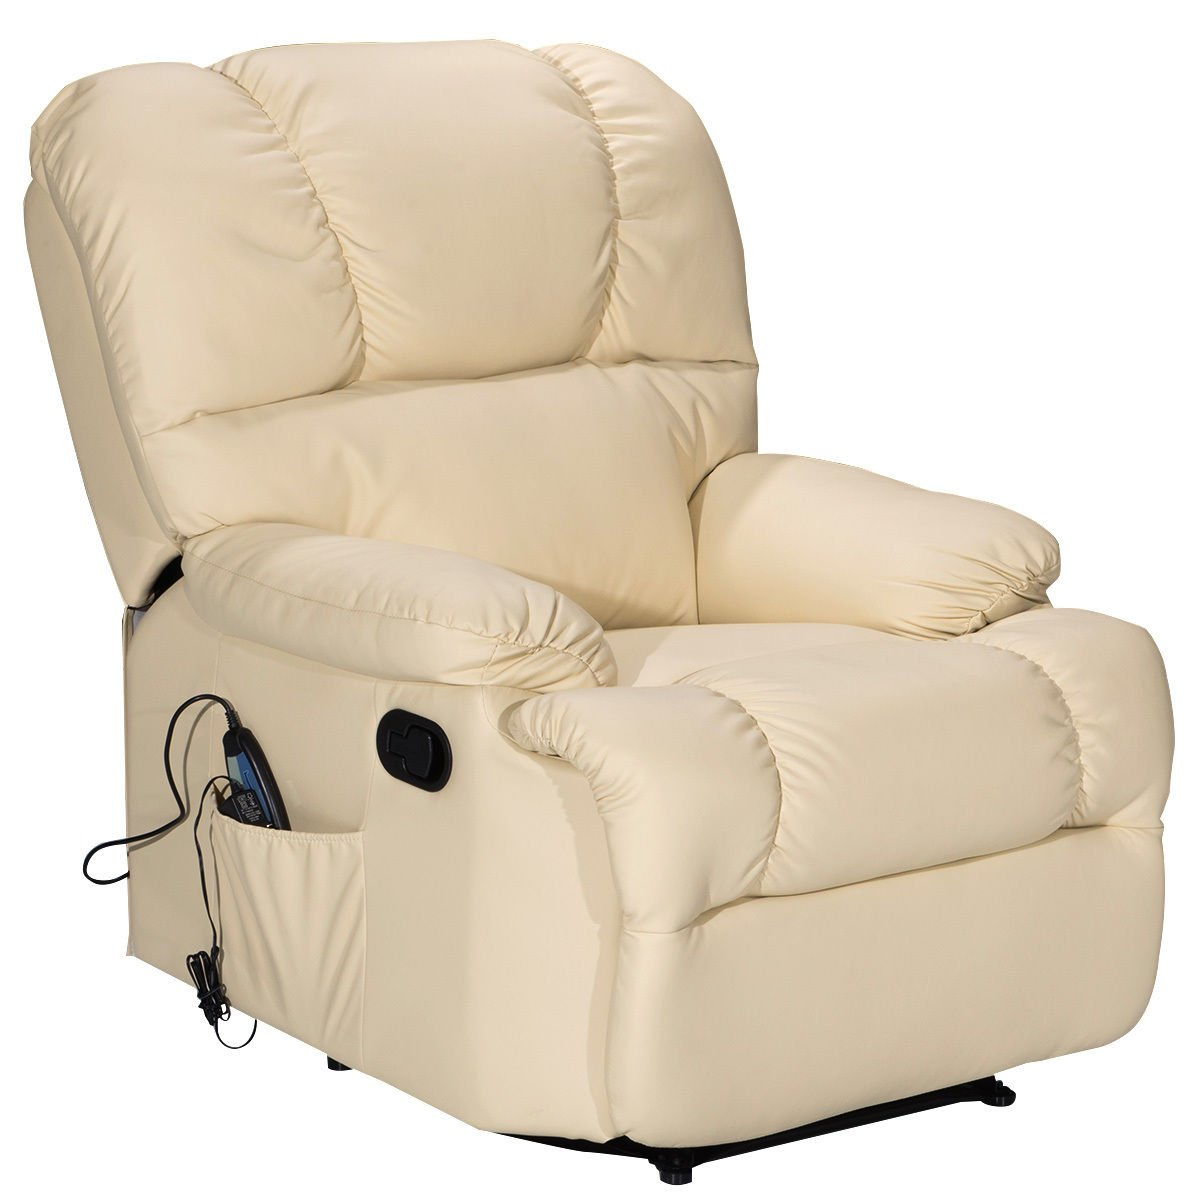 Amazon.com: Giantex Recliner Massage Sofa Chair Deluxe Ergonomic Lounge  Couch Heated W/Control (Beige): Kitchen U0026 Dining